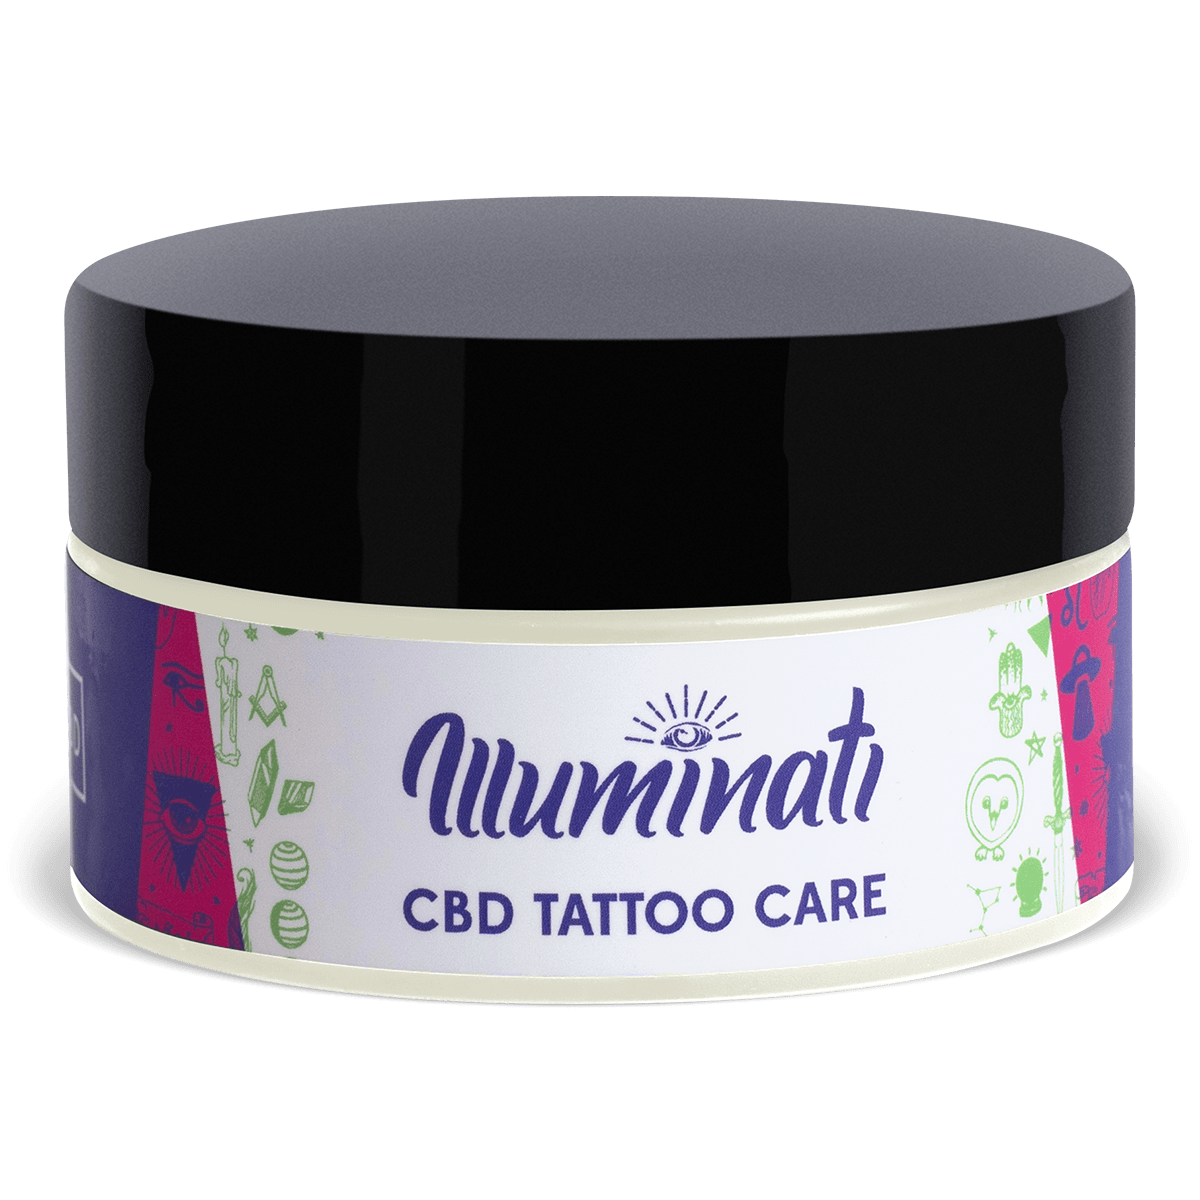 Illuminati Tattoo Care Cream 1600mg